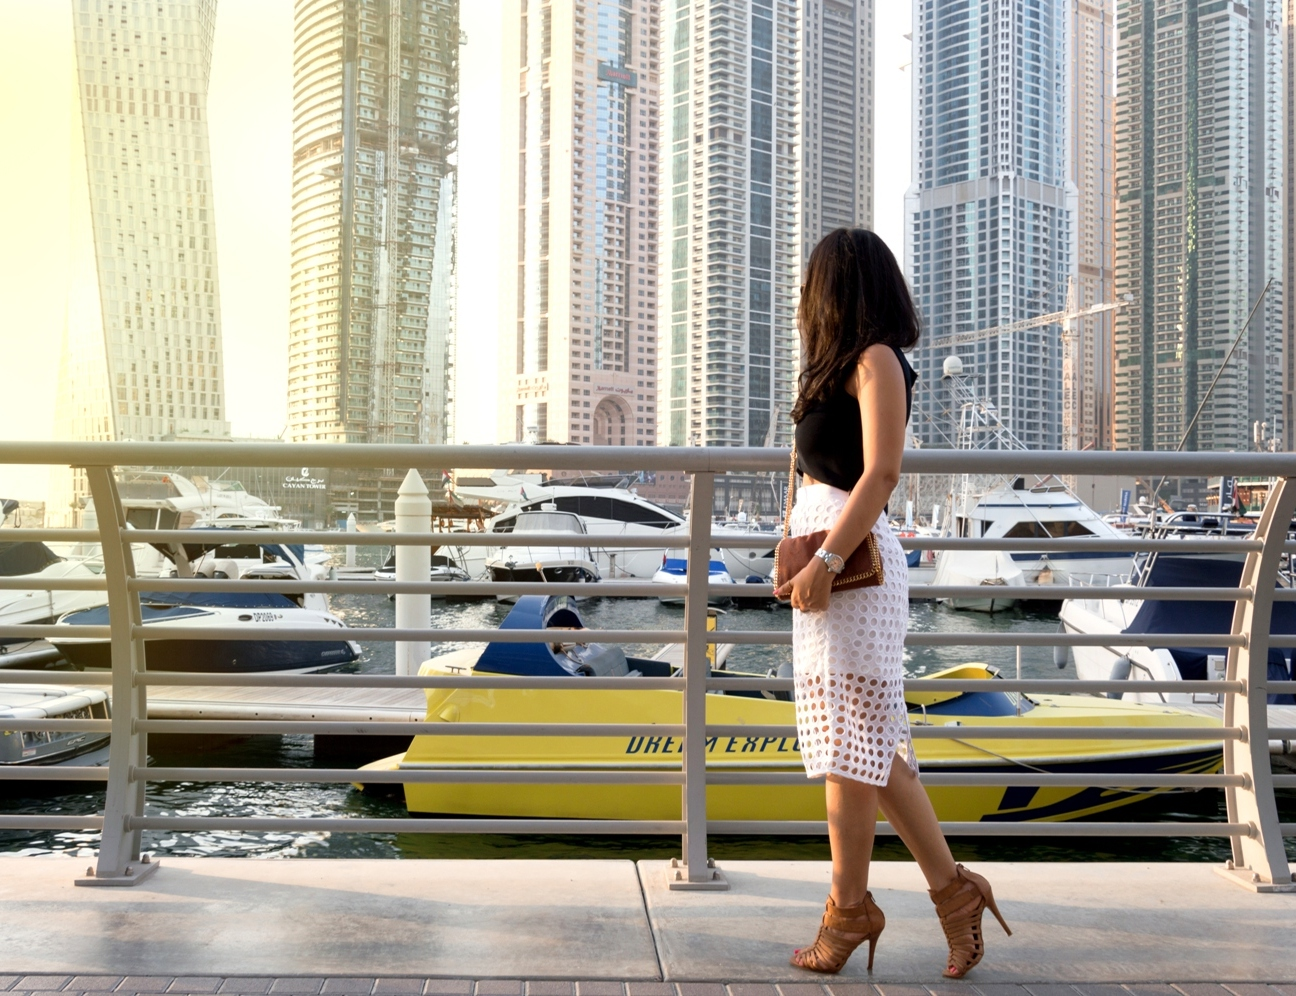 Dubai Marina Guide - Best Vegan Marin - Vegetarian marina, shopping in marina dubai - Vegan fashion - Style Destino